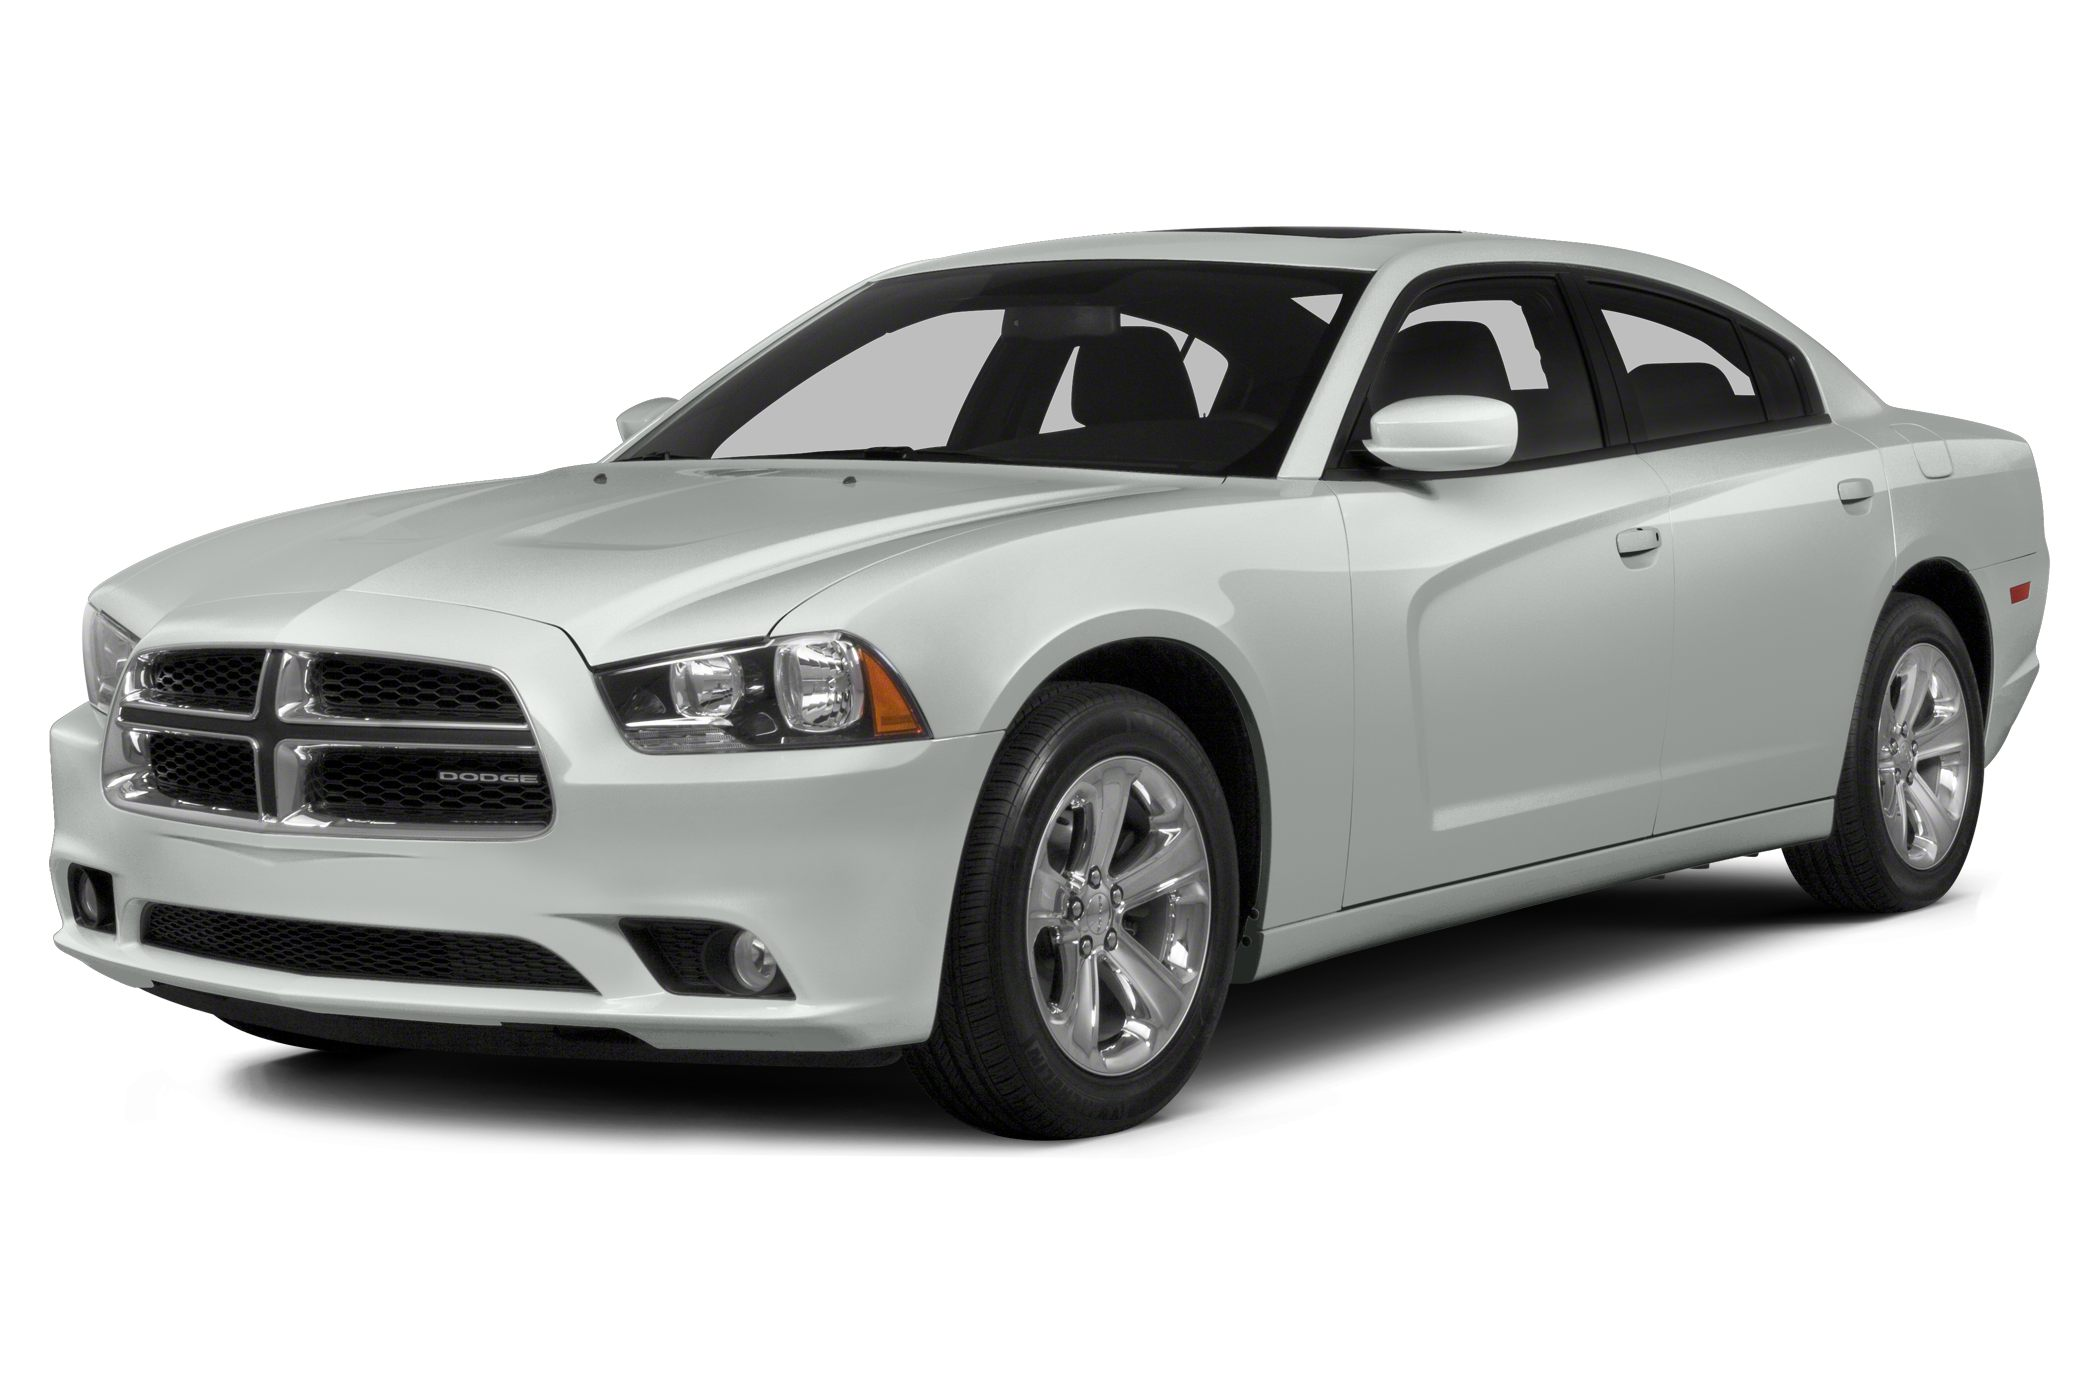 2014 Dodge Charger RT SHARP Looking ONE OWNER Charger RT AWD with only 28725 Miles This is a H